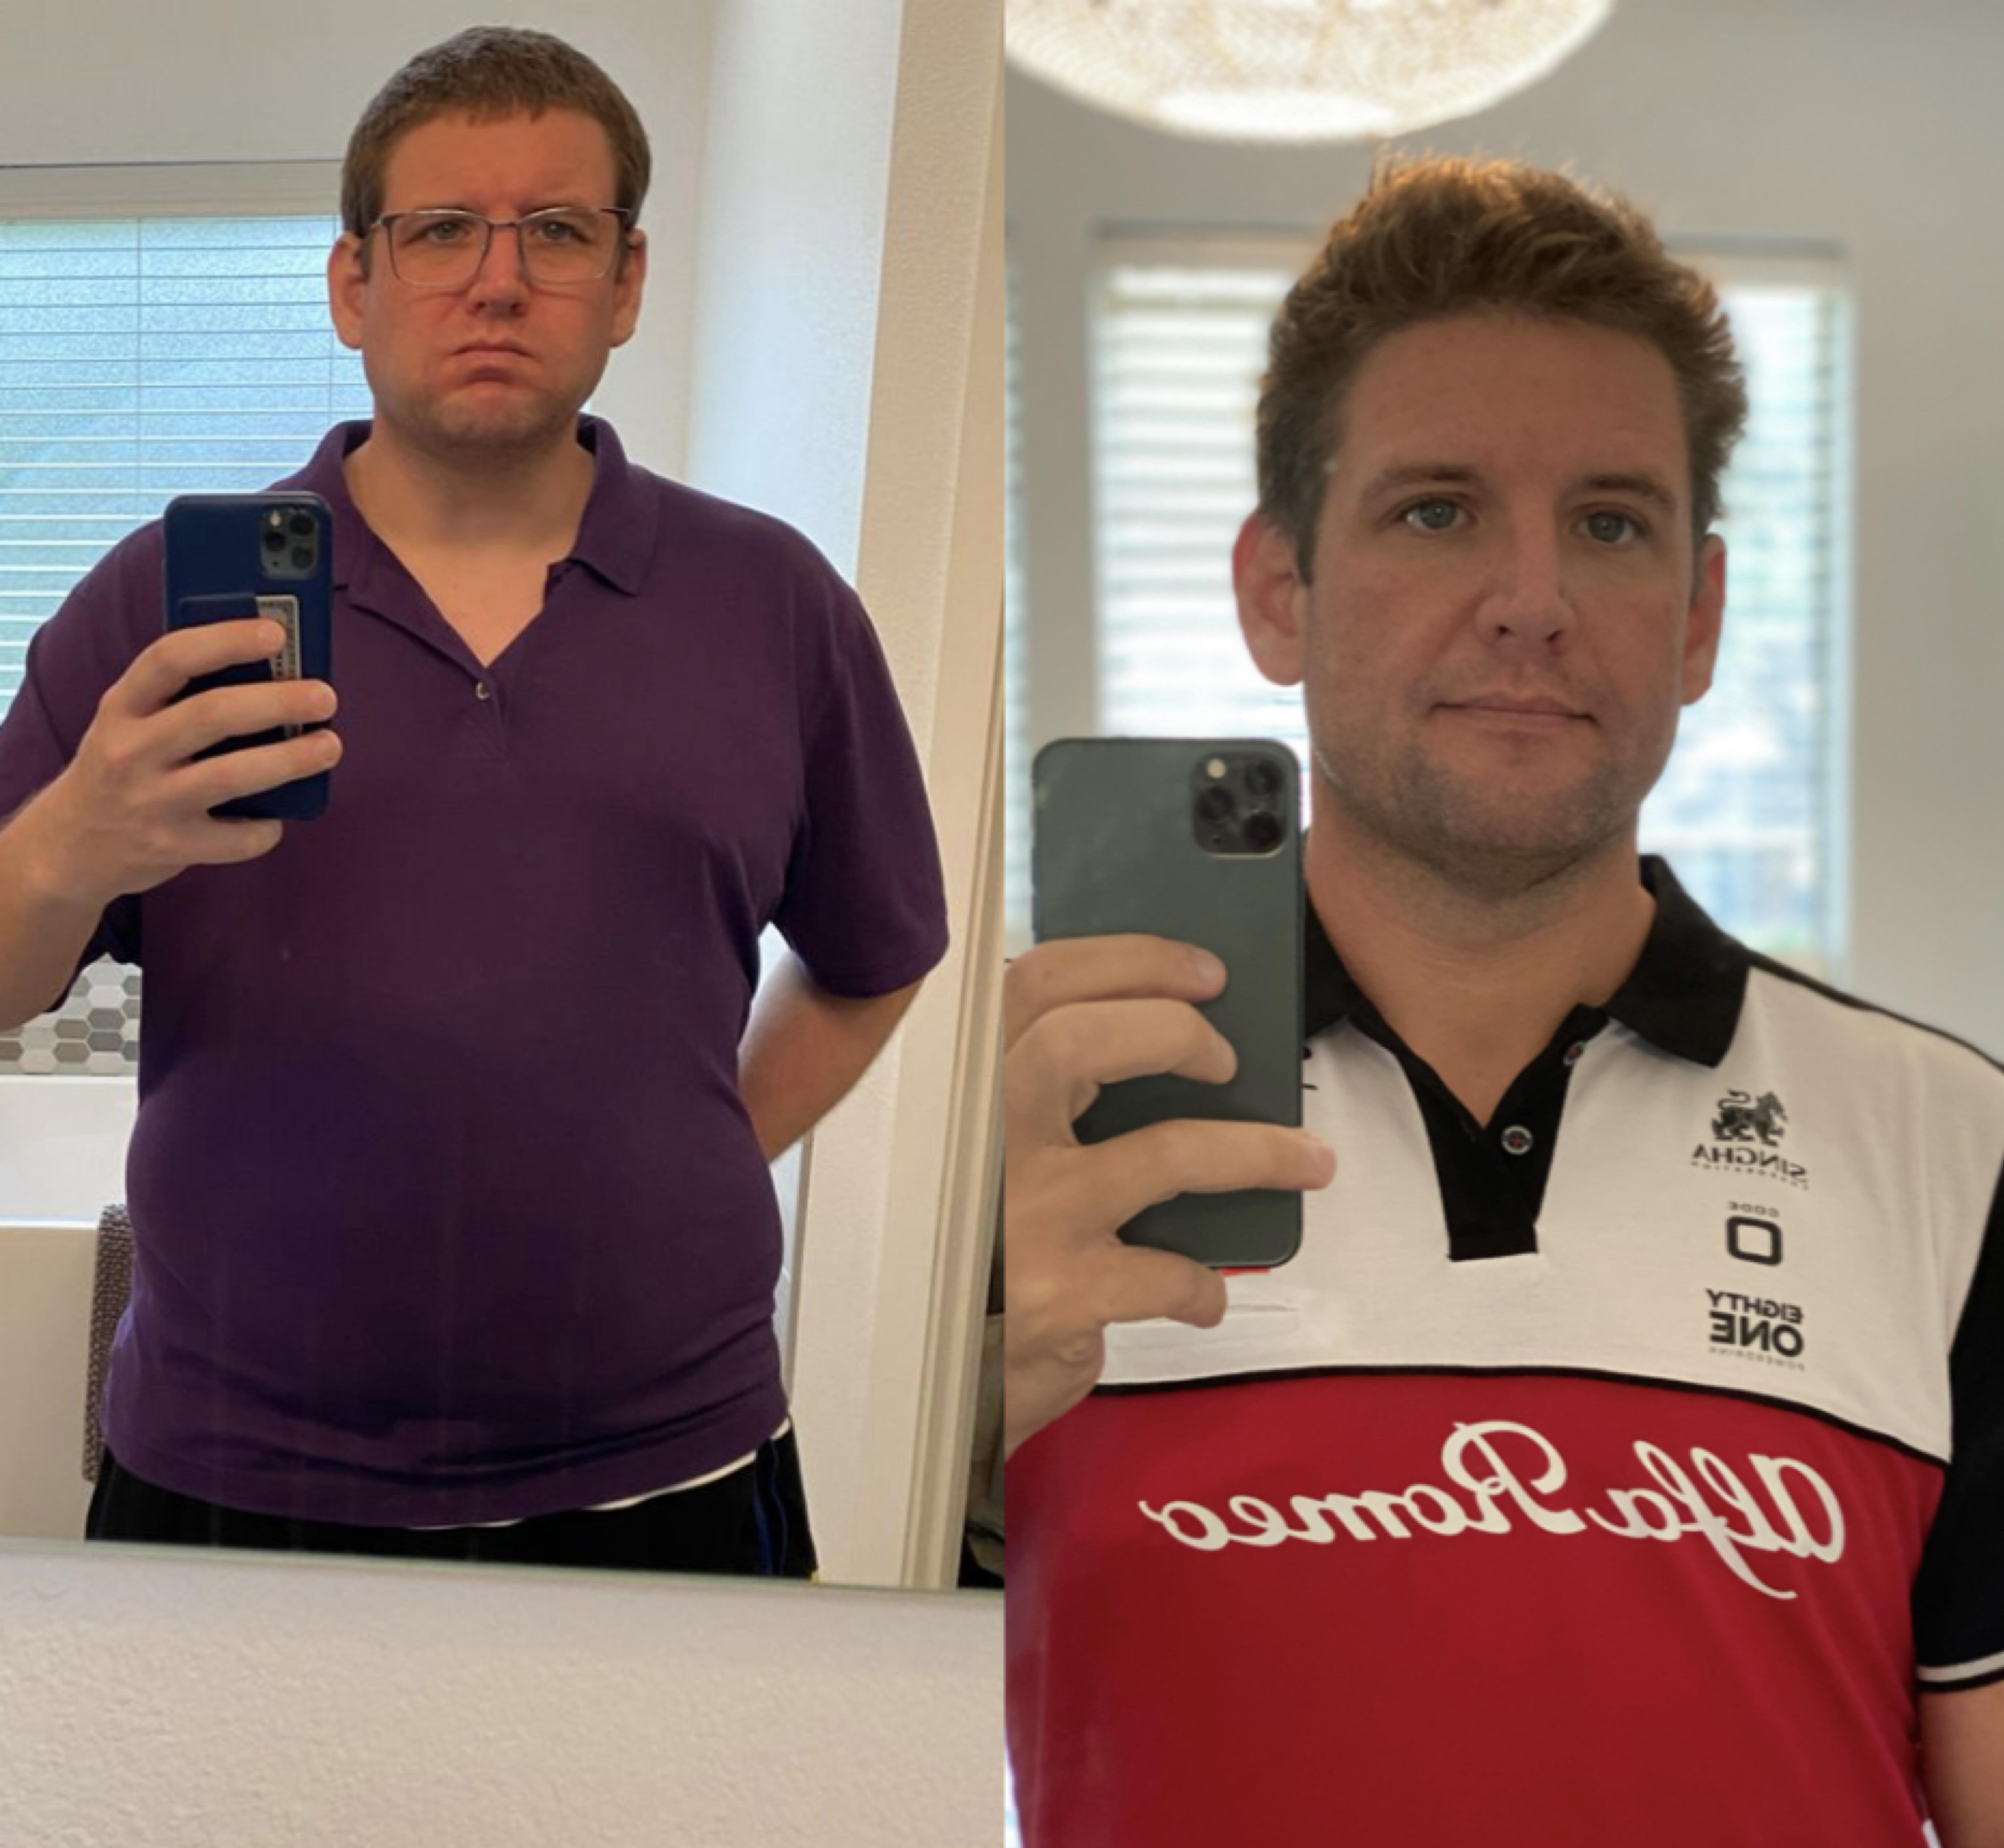 6 feet 2 Male 102 lbs Weight Loss Before and After 331 lbs to 229 lbs